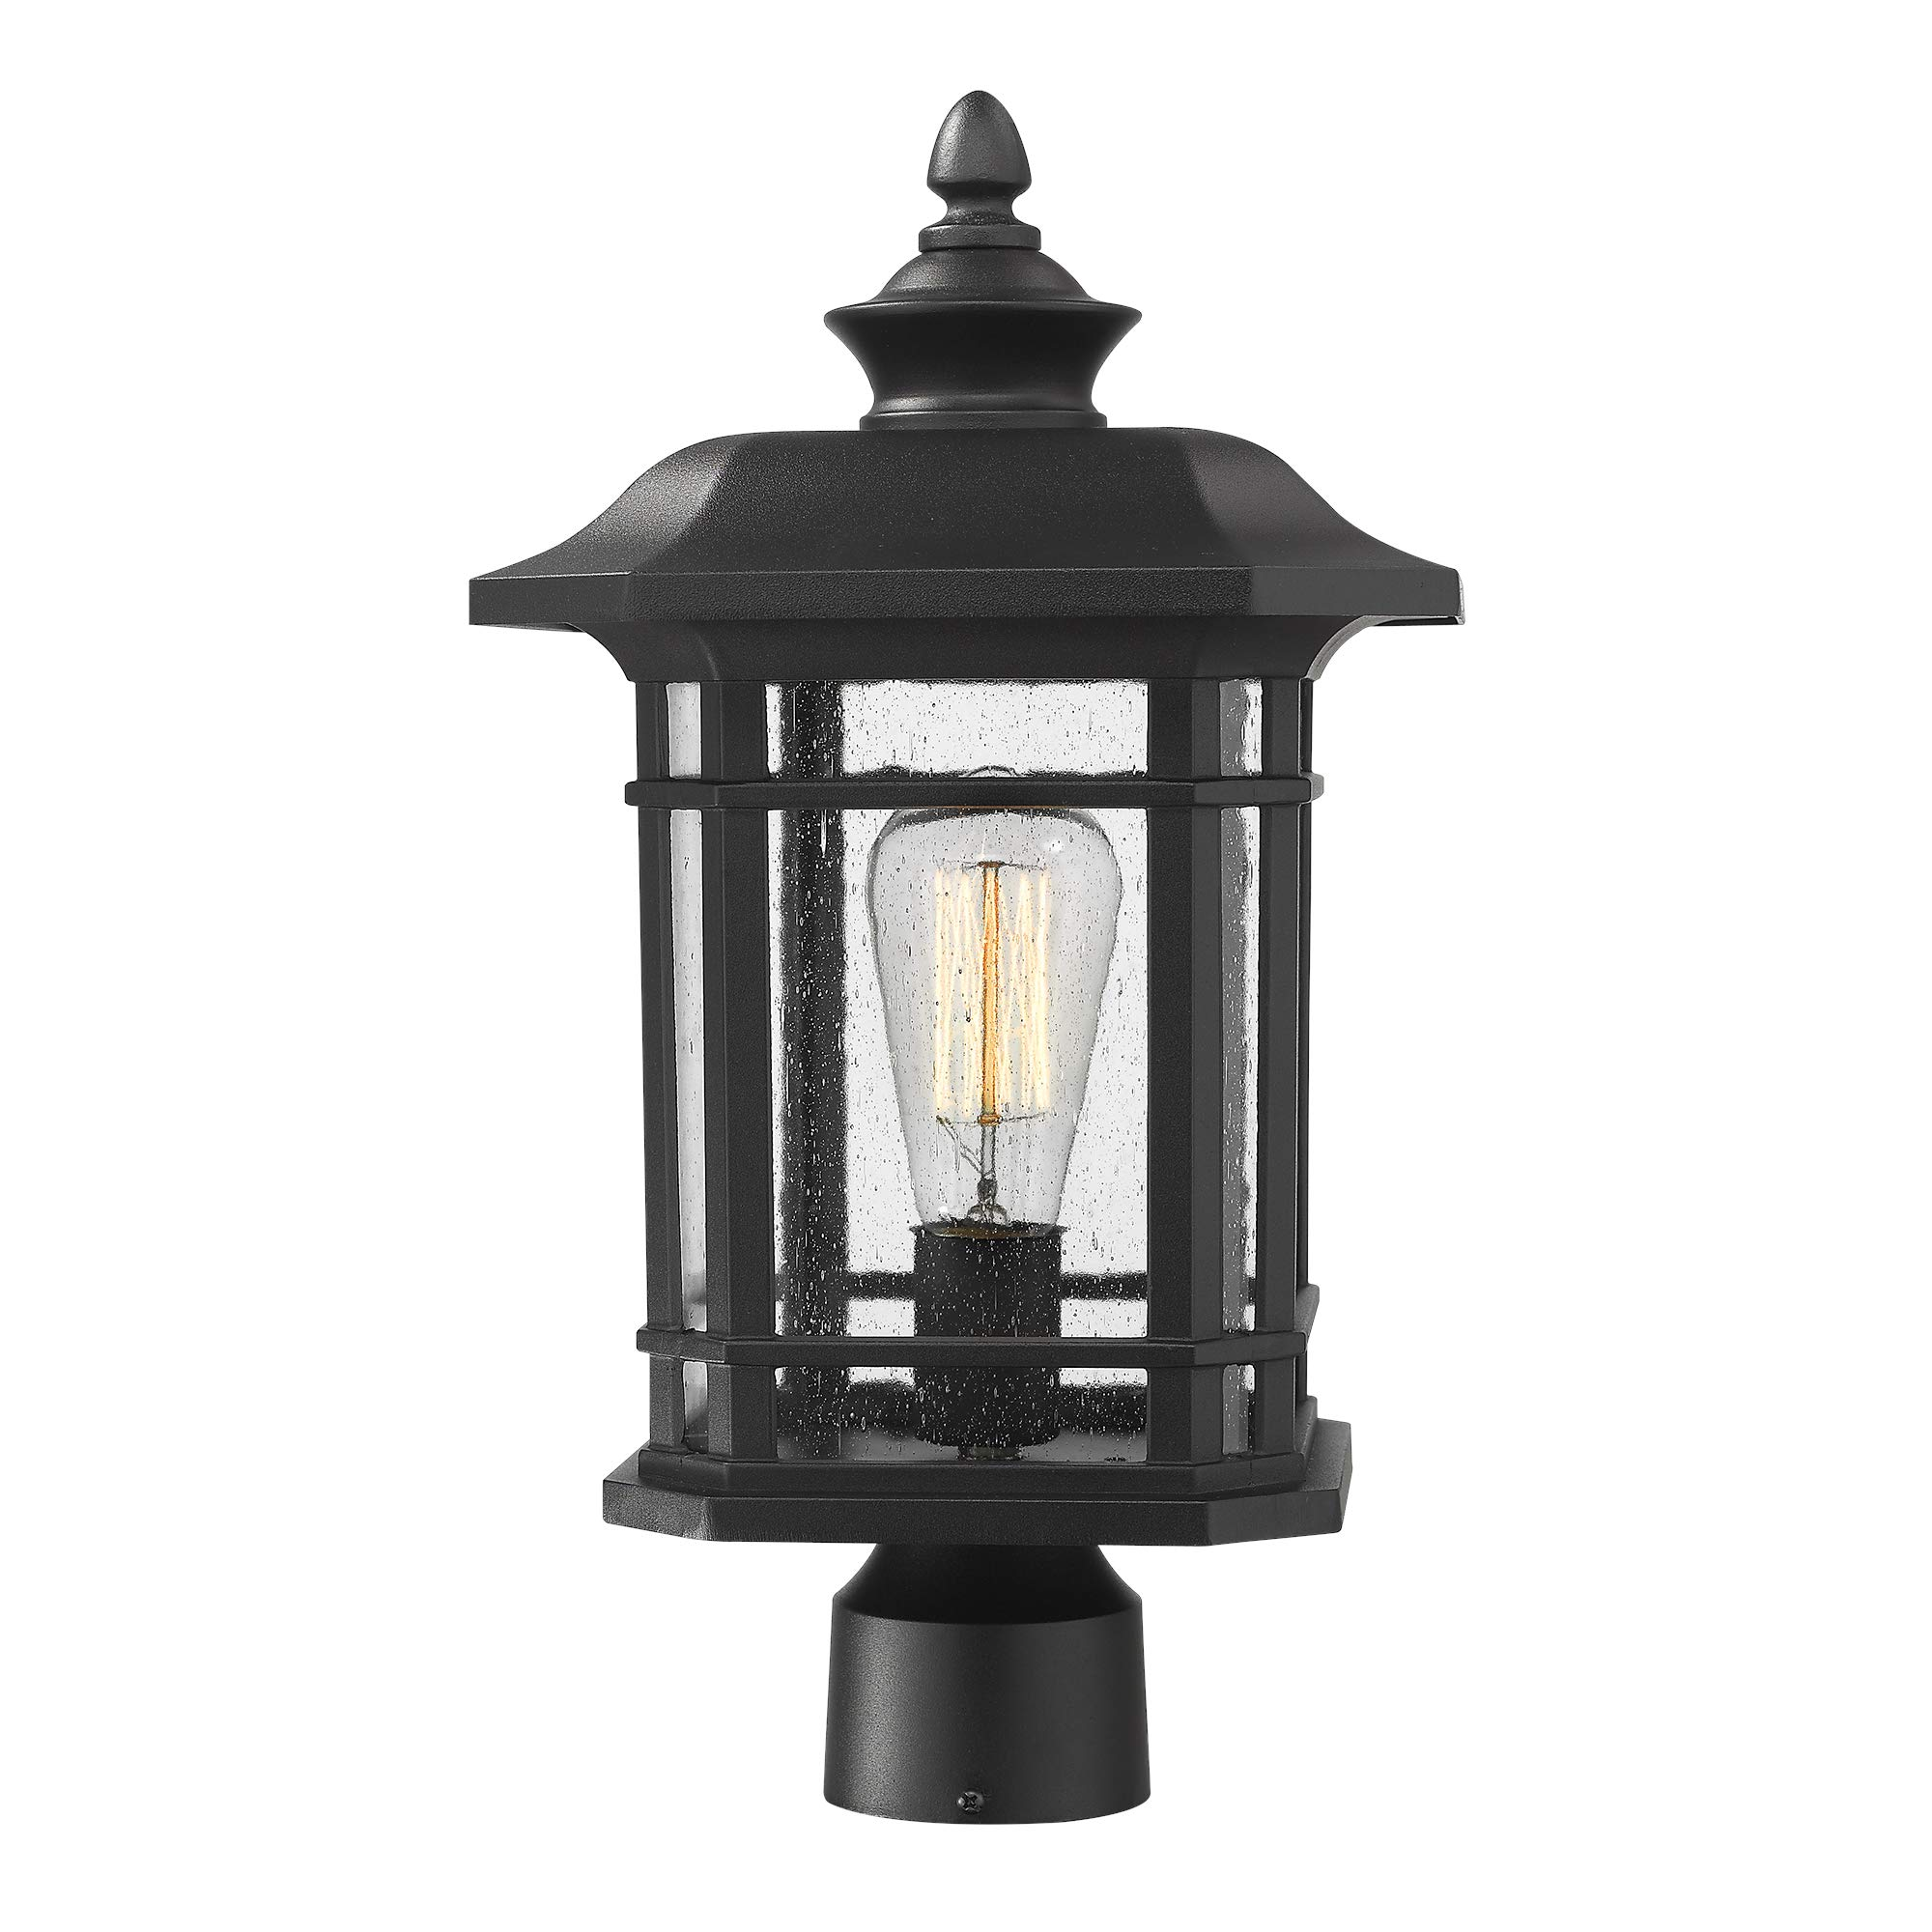 Emliviar Outdoor Post Lighting Fixture 17 inch, 1-Light Exterior Post Light in Black Finish with Seeded Glass, A2202110P1 by EMLIVIAR